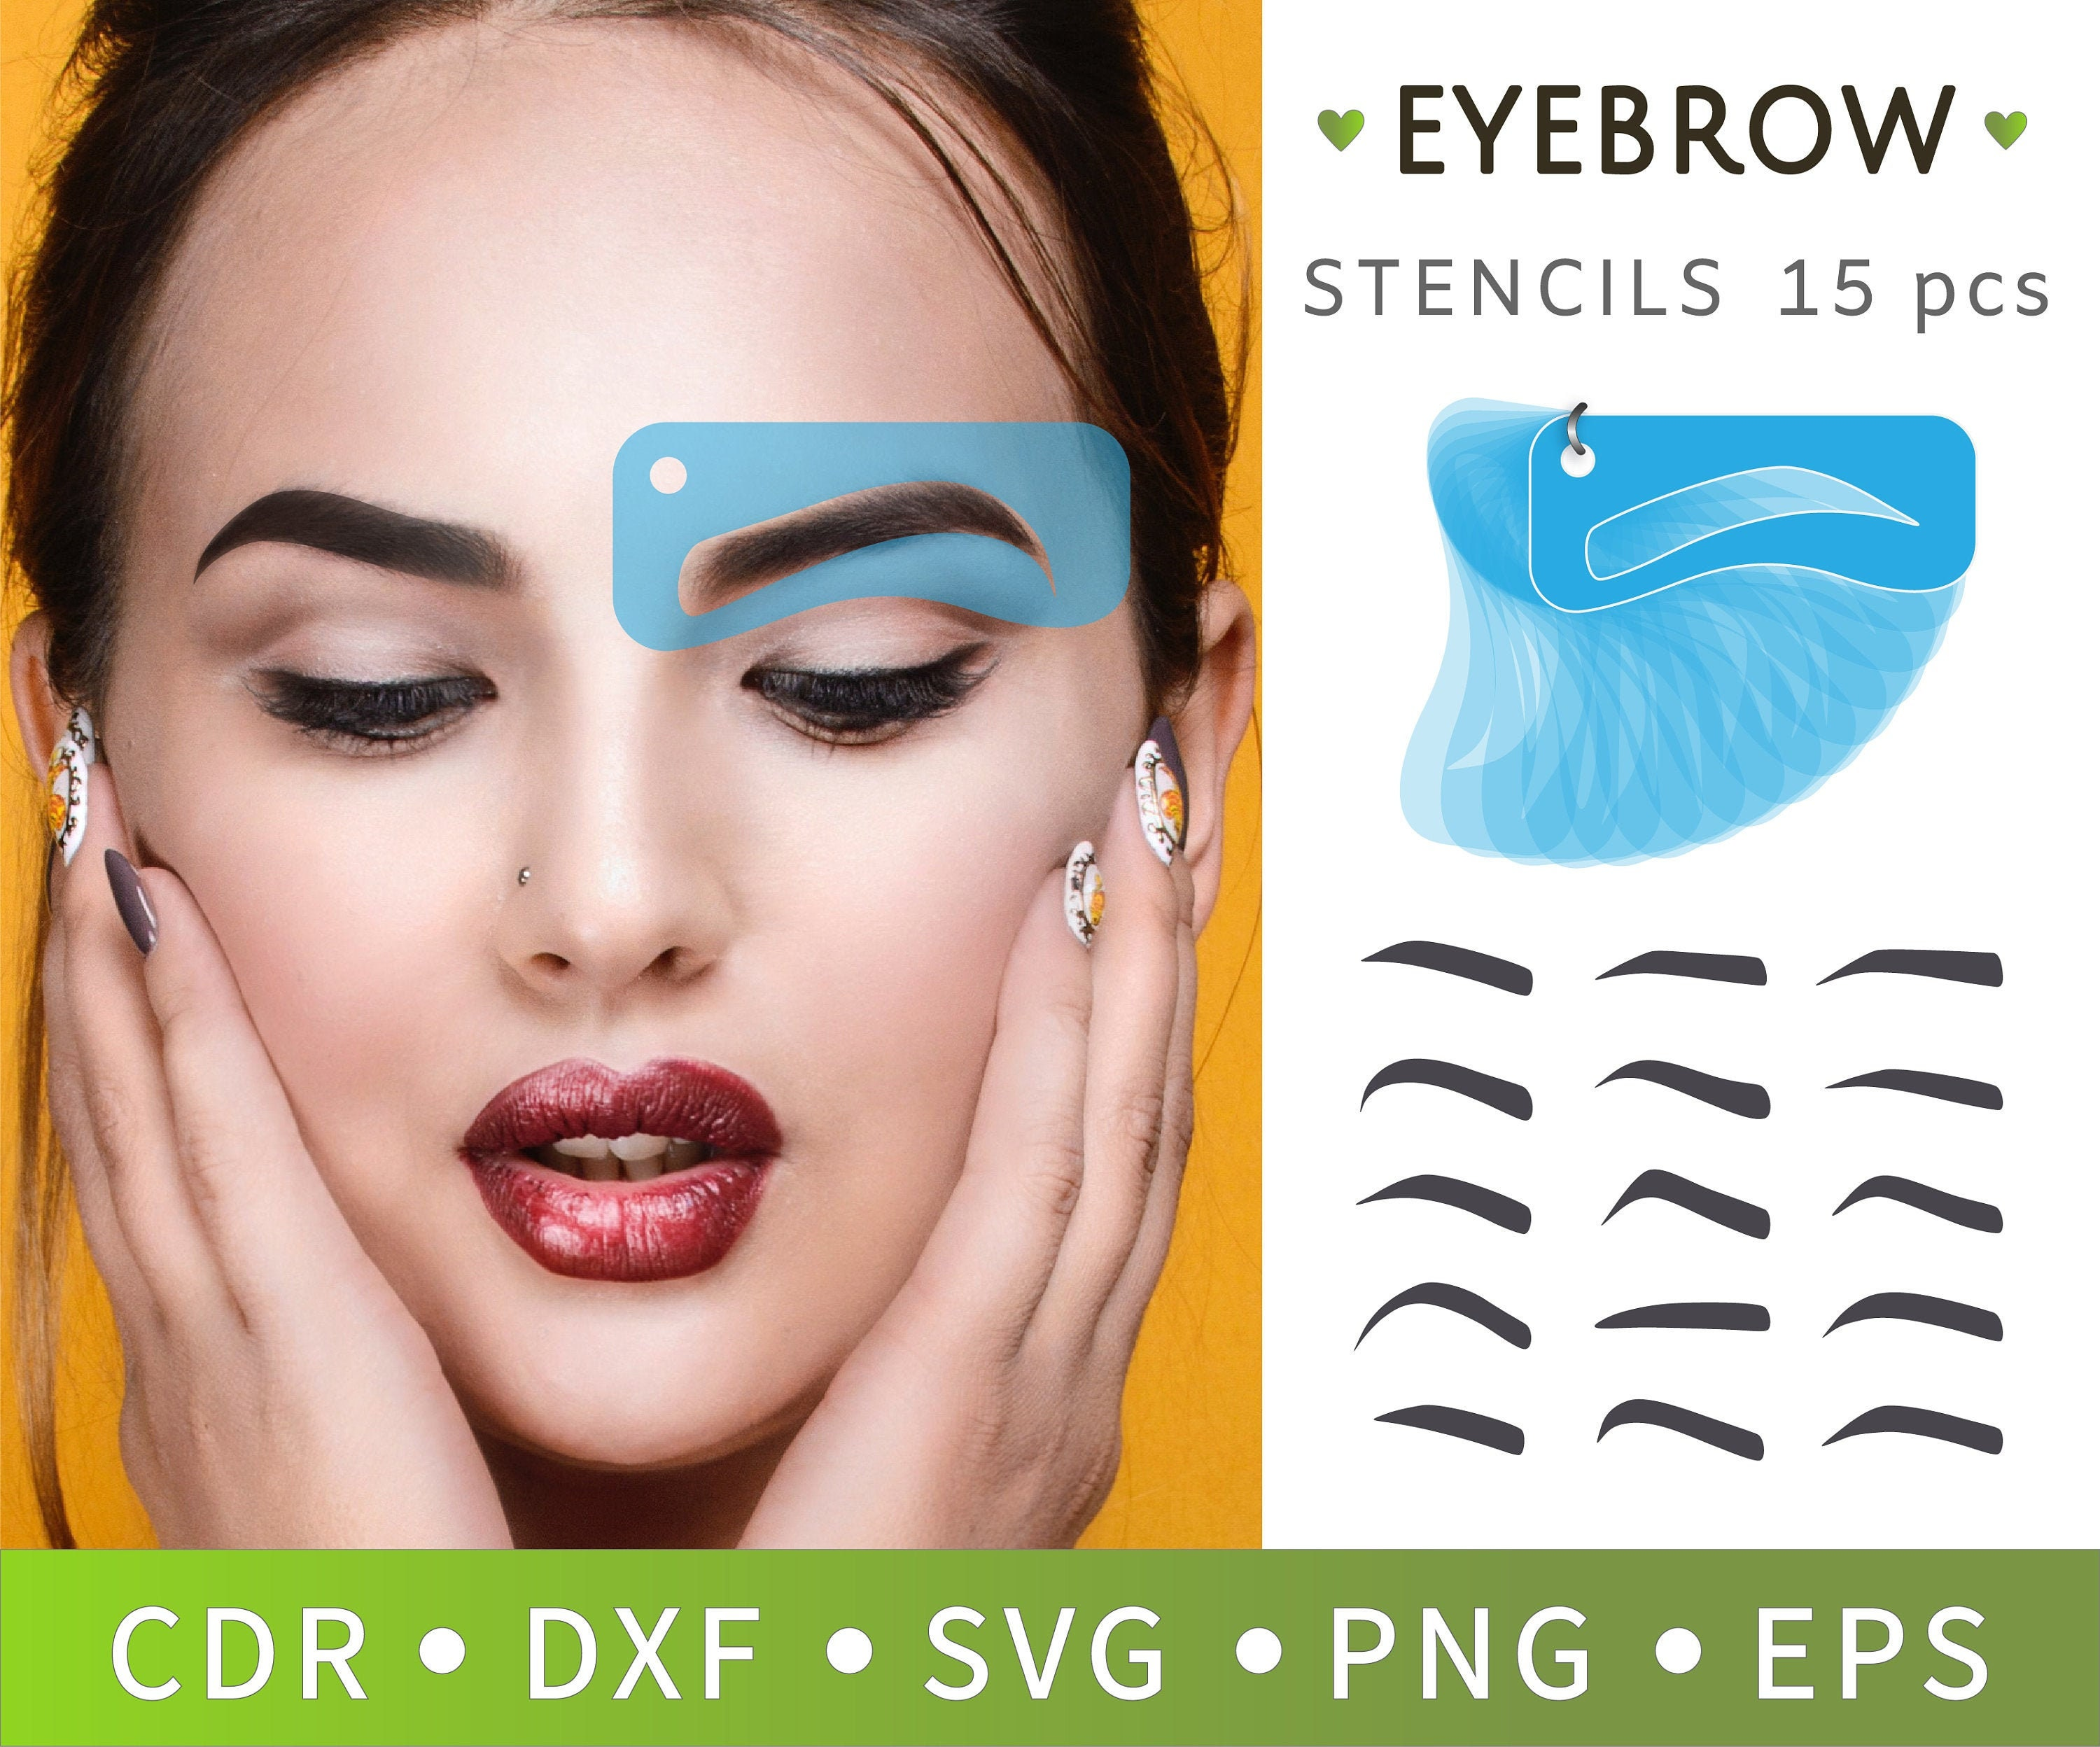 image about Printable Eyebrow Stencil titled 15 Make-up stickers, Confront stickers, Laser reduce vector, Tailored make-up, Eyebrow stencil SVG, Printable stencil, Facial area elegance make-up resource